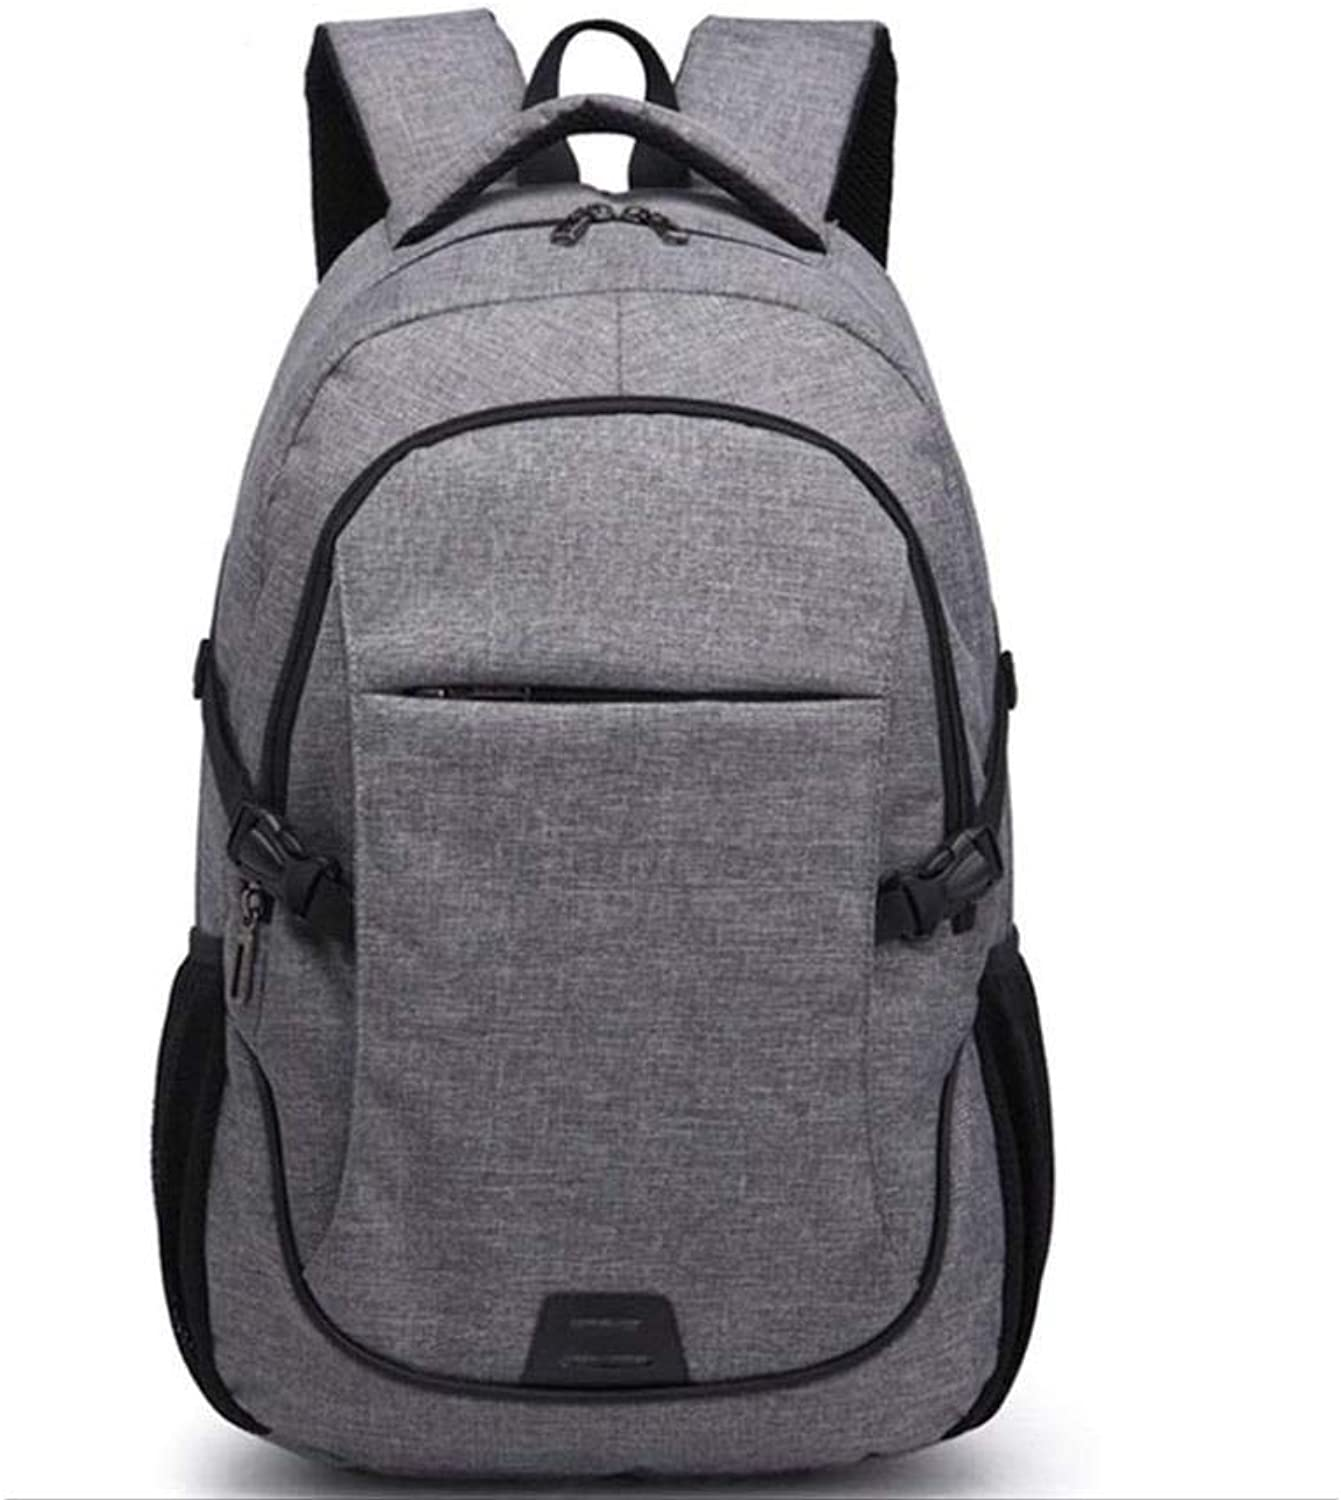 Ultra Lightweight Packable Backpack Hiking Daypack,Handy Foldable Camping Outdoor Backpack (color   Grey, Size   33  16  50CM)